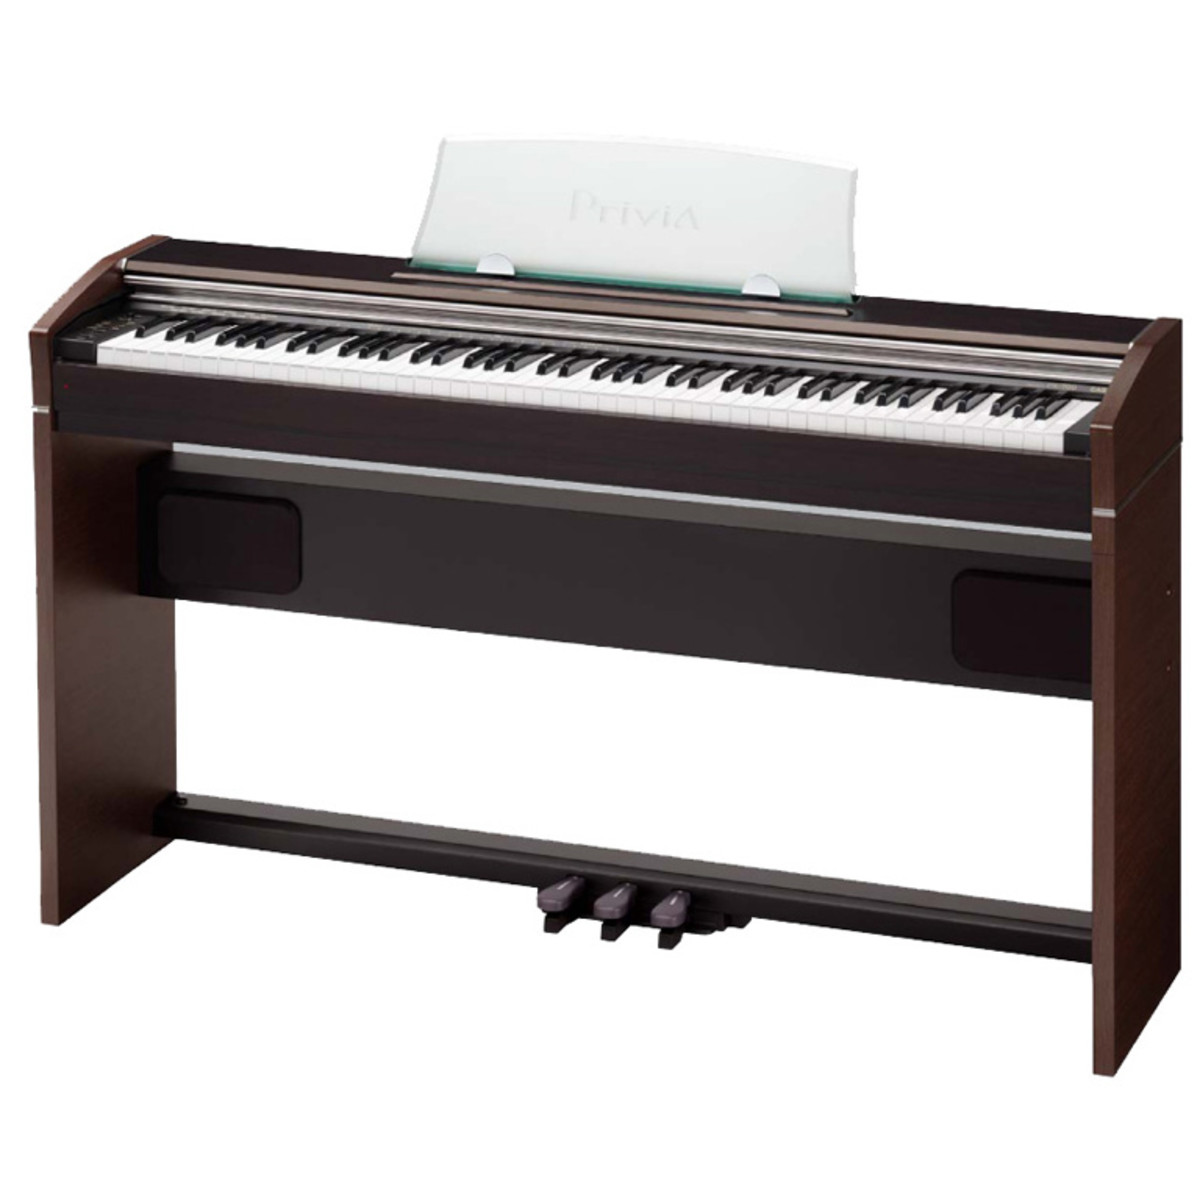 disc casio privia px 700 digital piano at. Black Bedroom Furniture Sets. Home Design Ideas